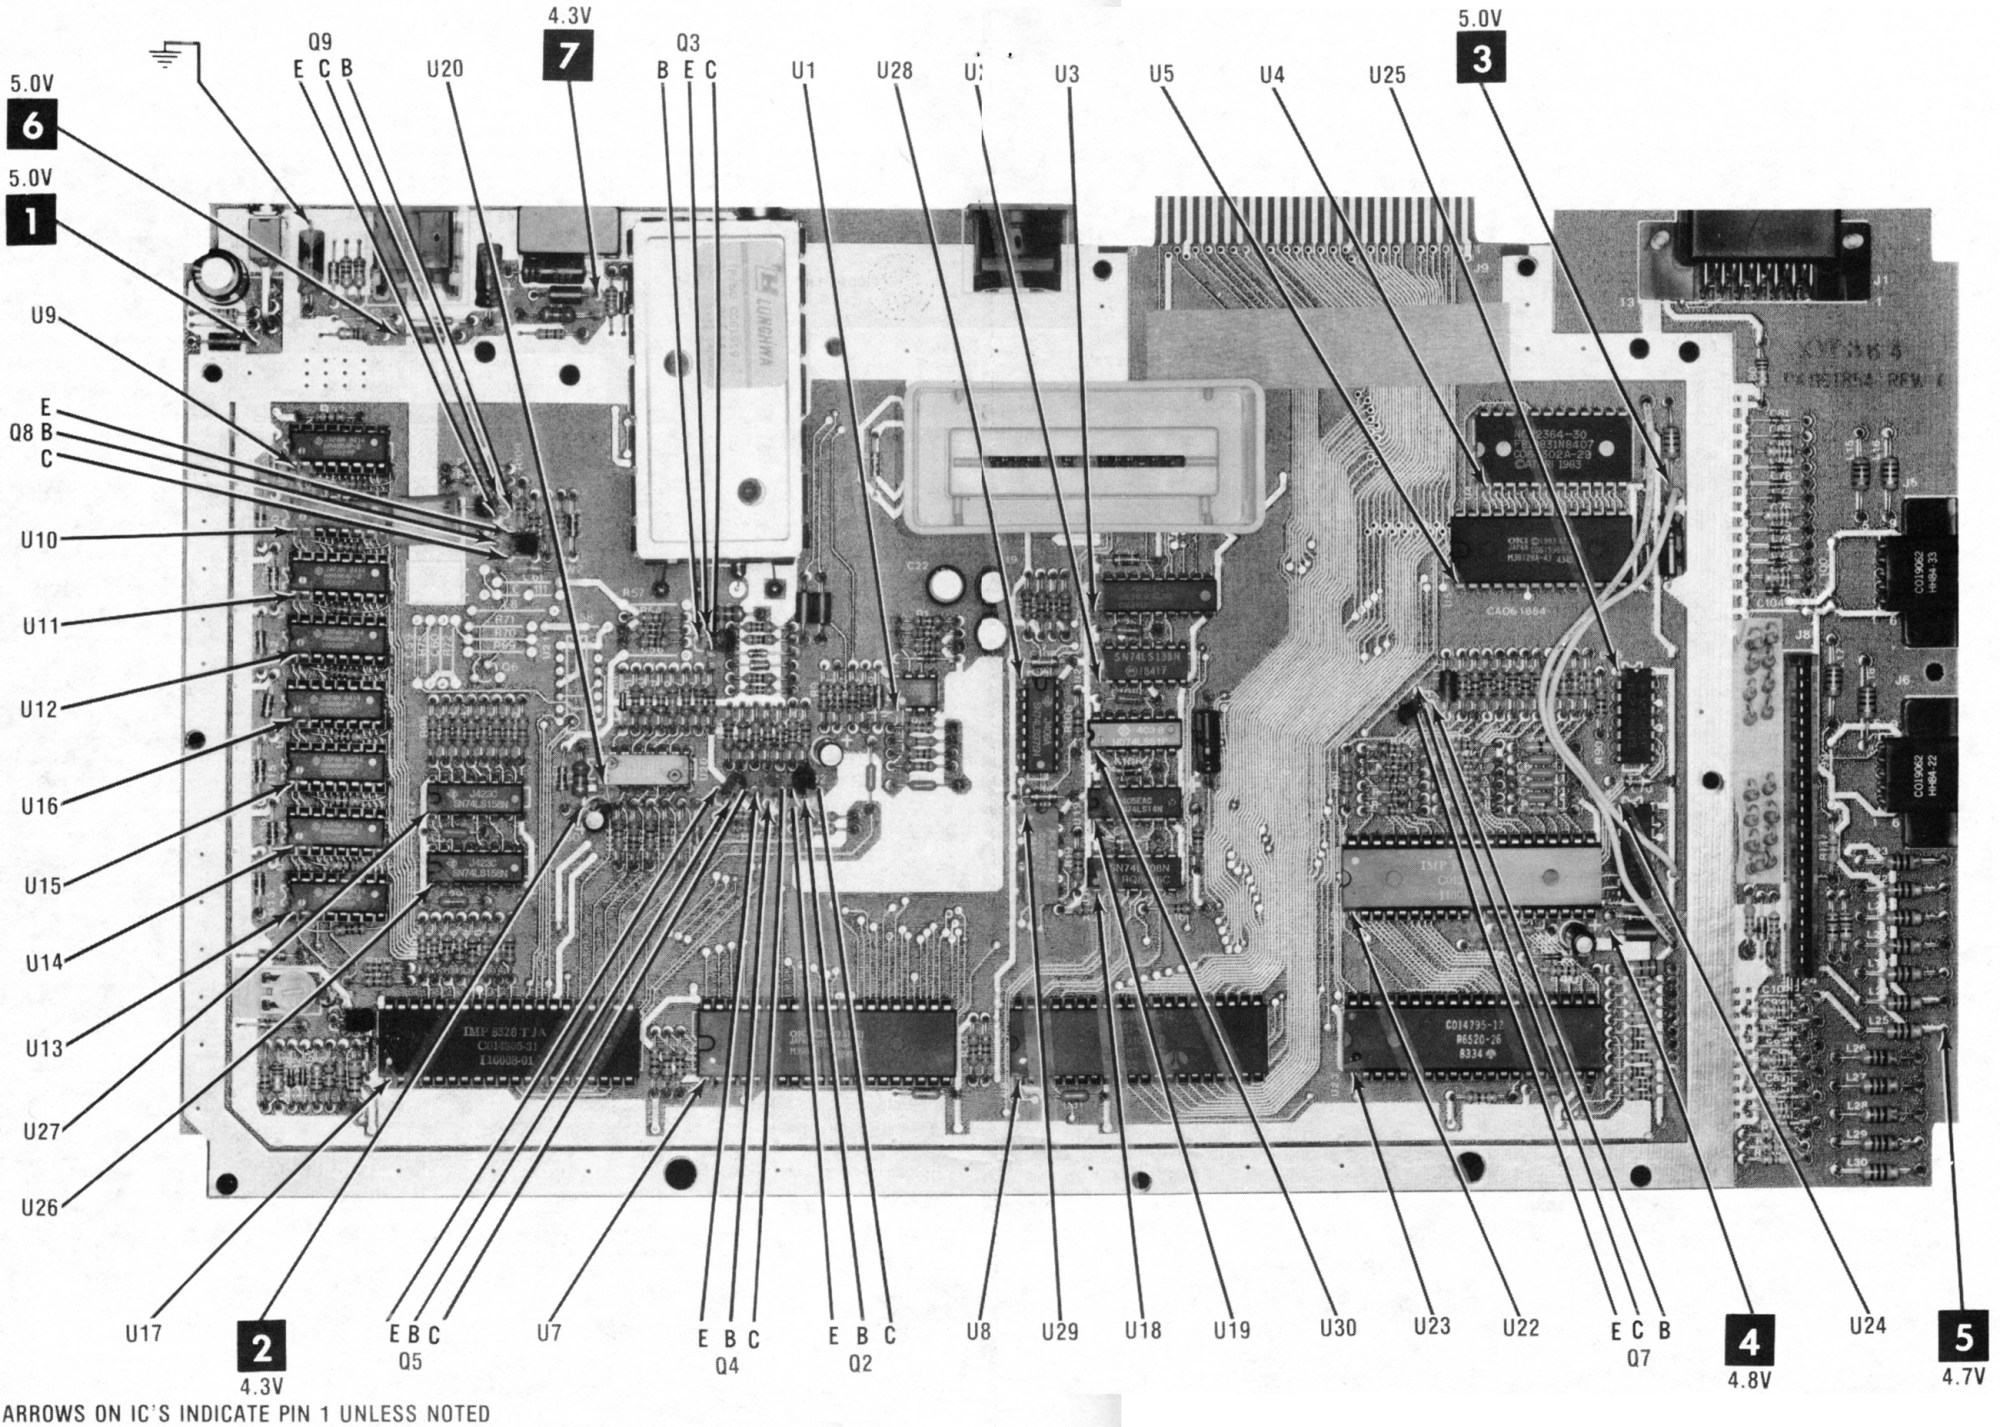 hight resolution of pulled from sam s computer facts for 800xl 800xlboardlayout jpg